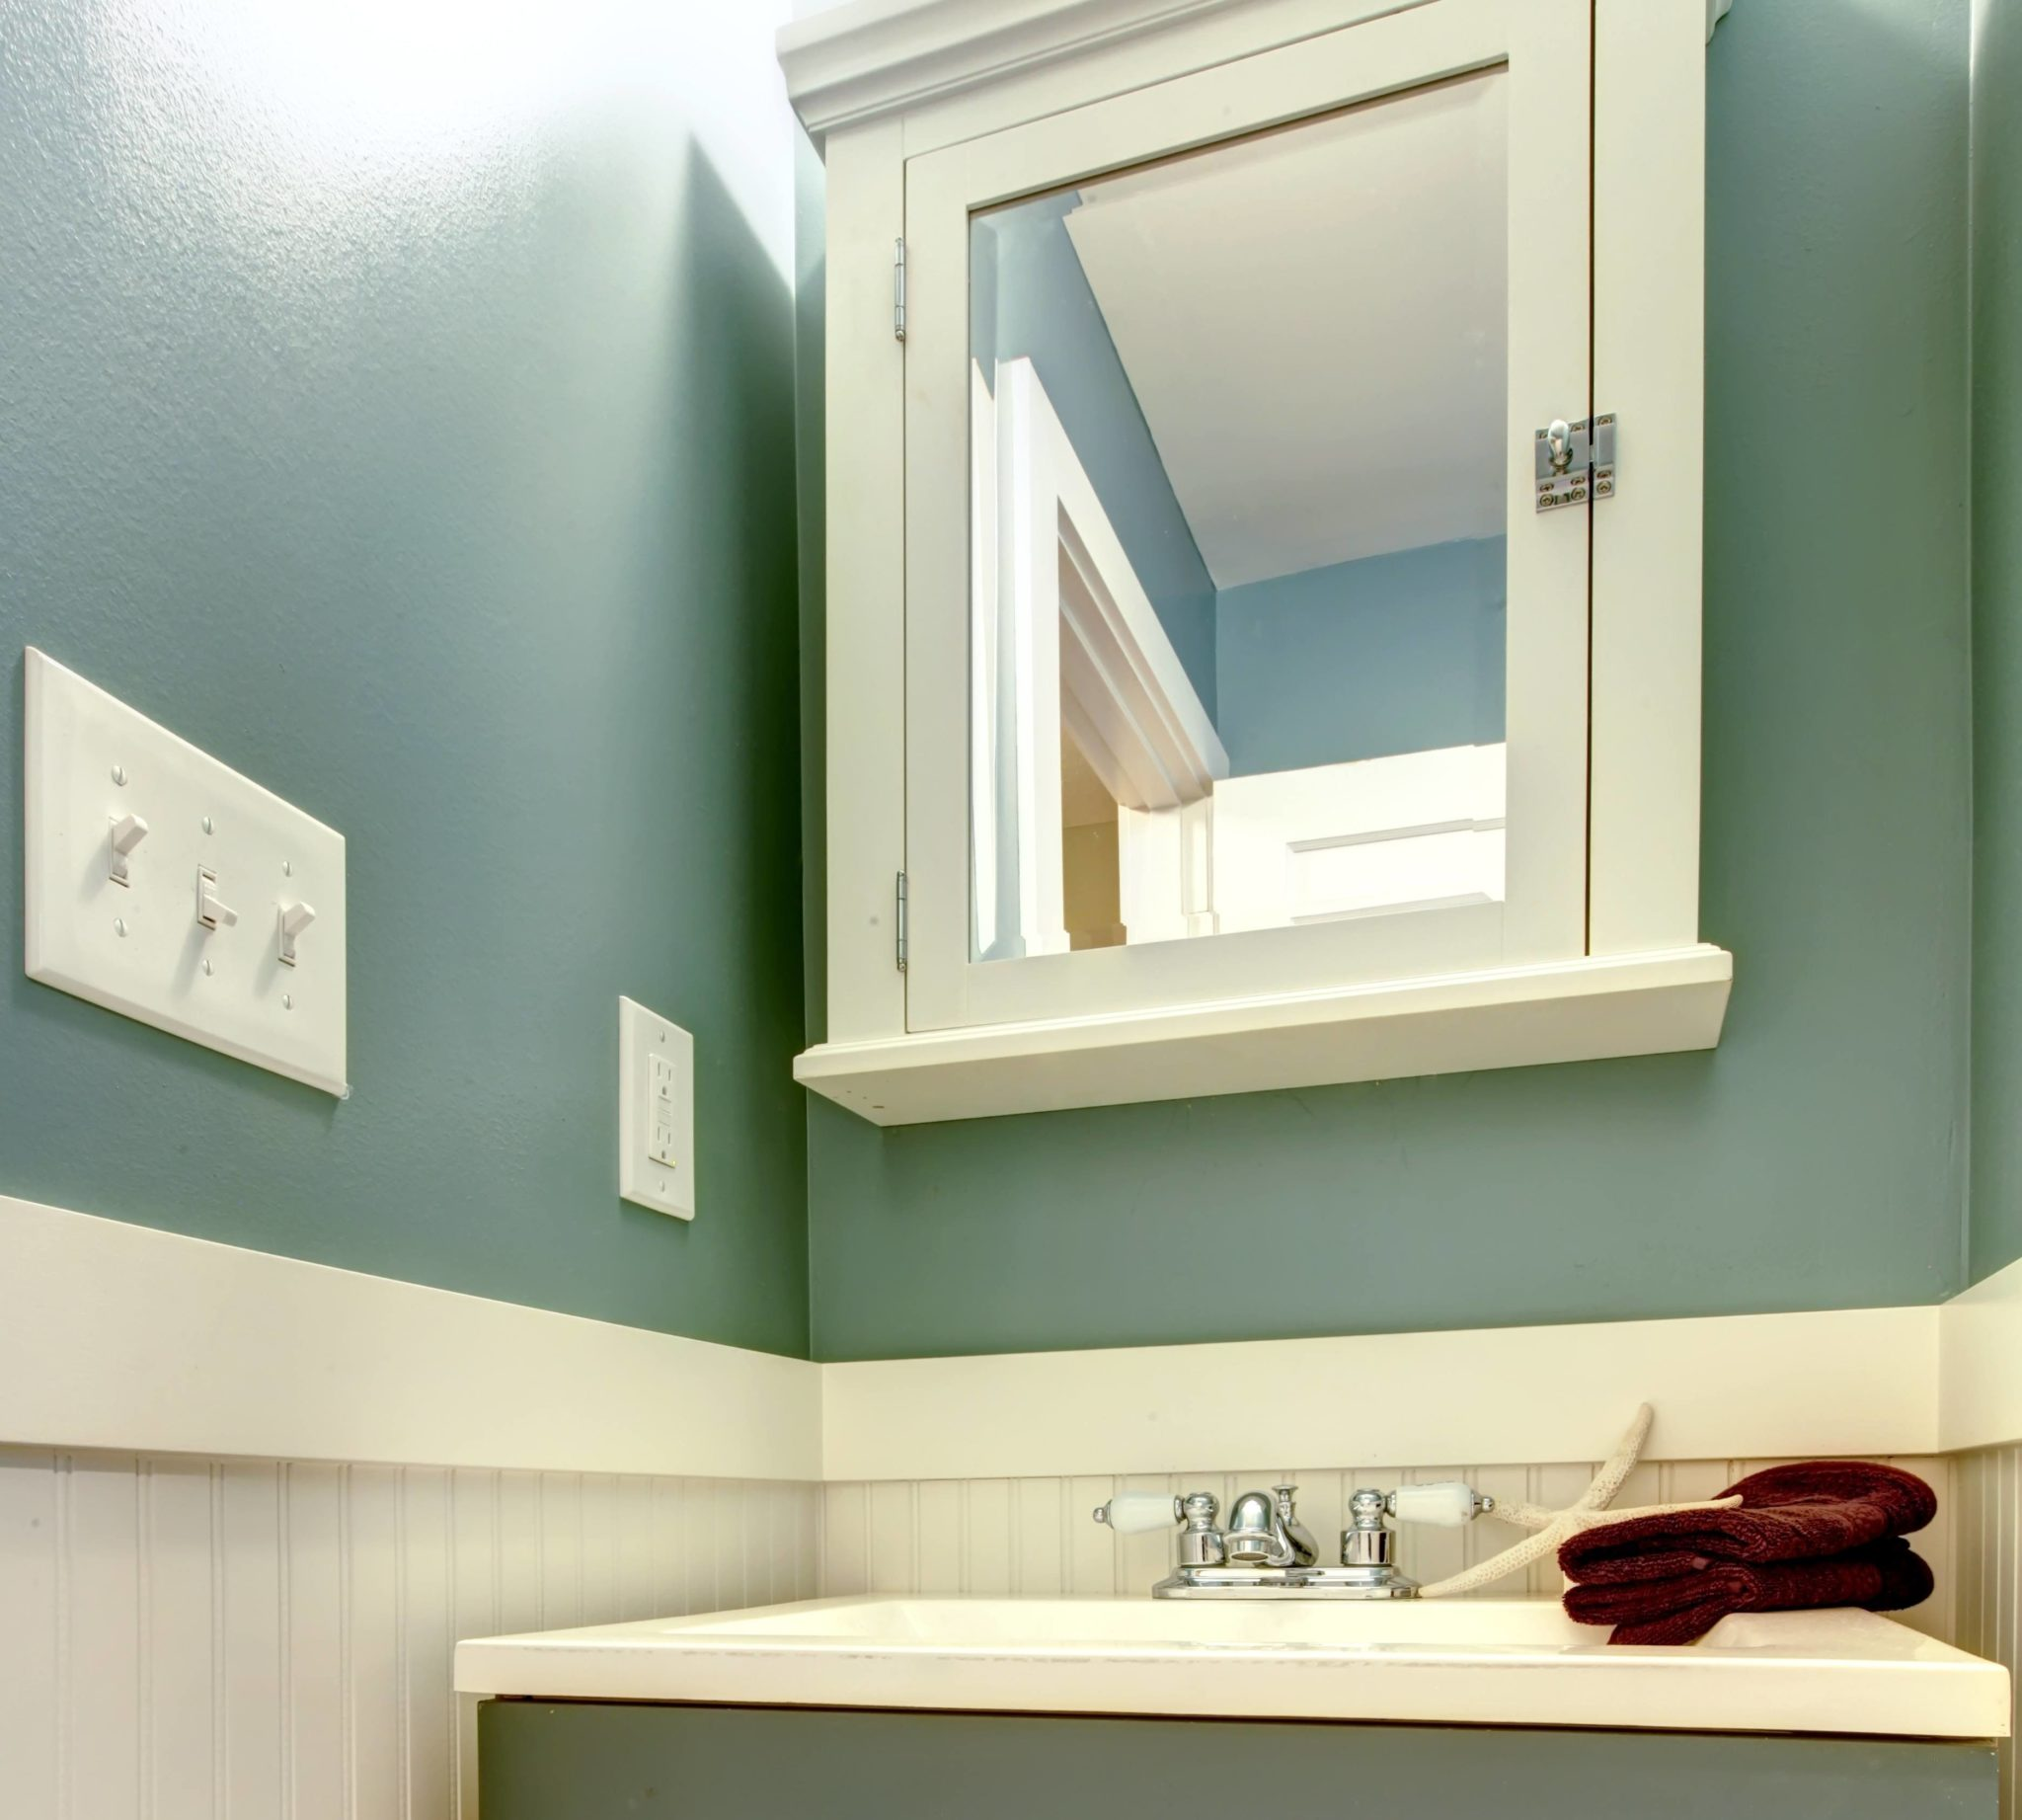 11 easy bathroom remodeling ideas the money pit for Stand alone medicine cabinet